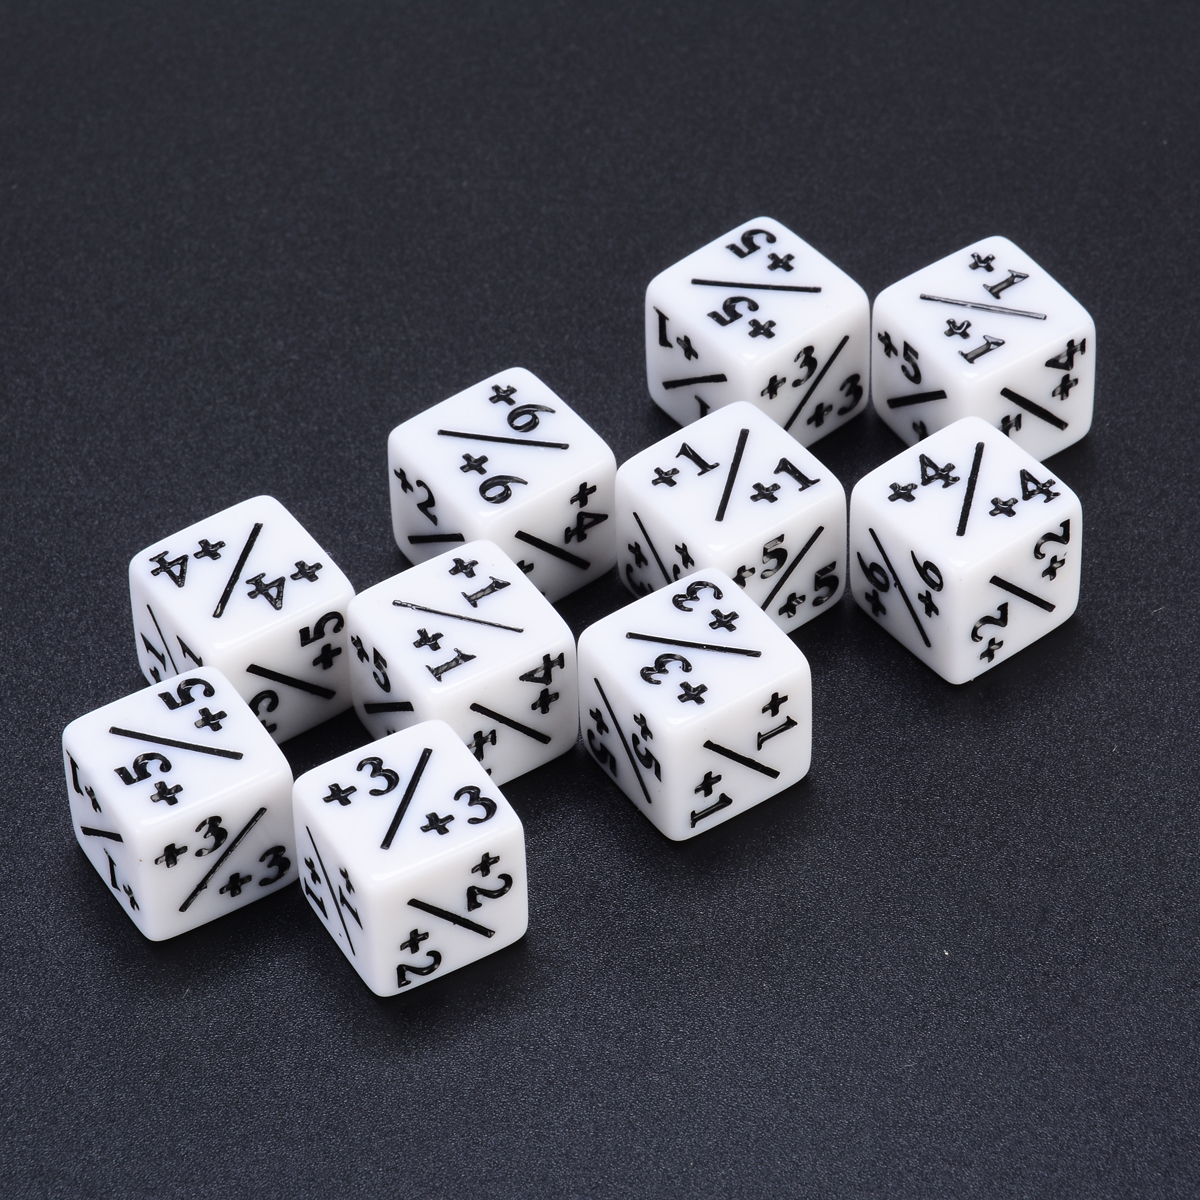 10pcs White Dice Counters +1/+1 For Magic The Gathering & MTG Games Poker Party Bar Gambling Board Desktop Funny Outdoor Dice screaming goat figurine